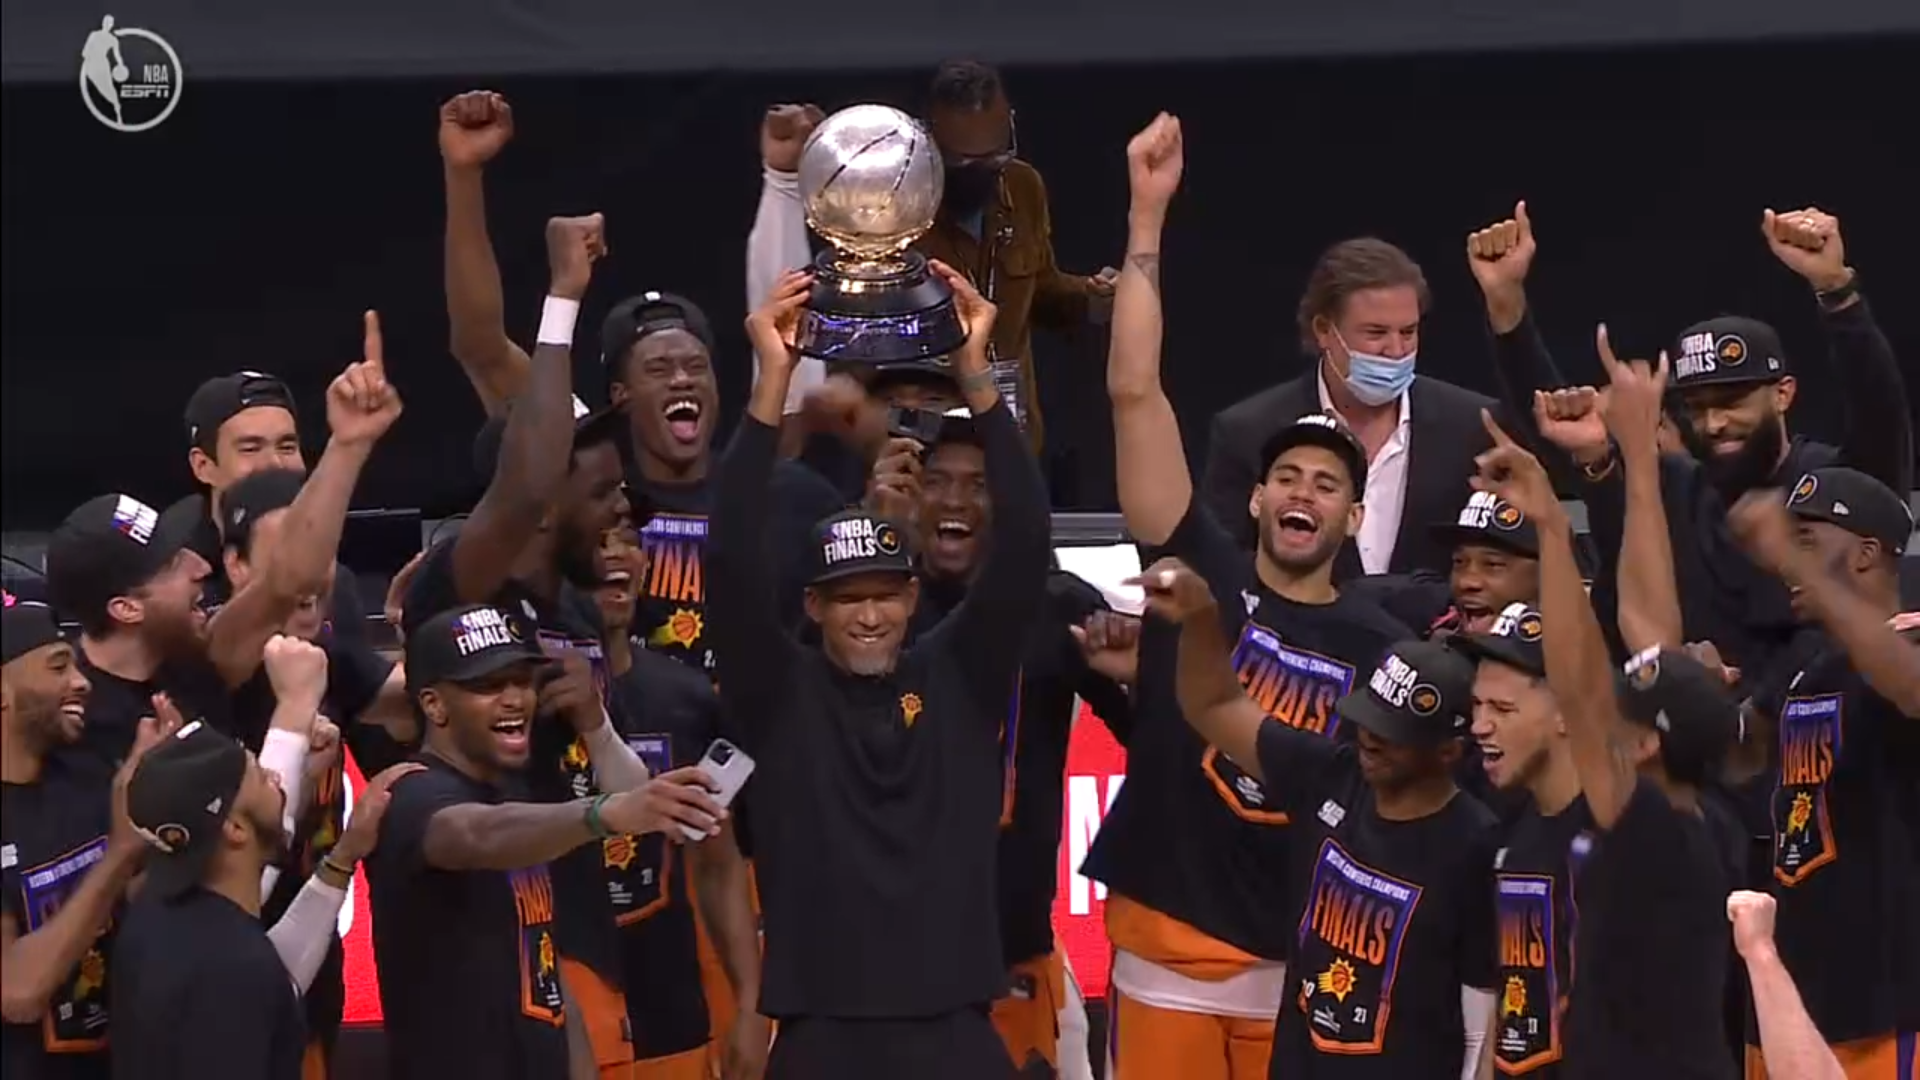 The Phoenix Suns are one of the most surprising NBA Finals teams ever. Who are the 10 least likely NBA Finalists of all time?